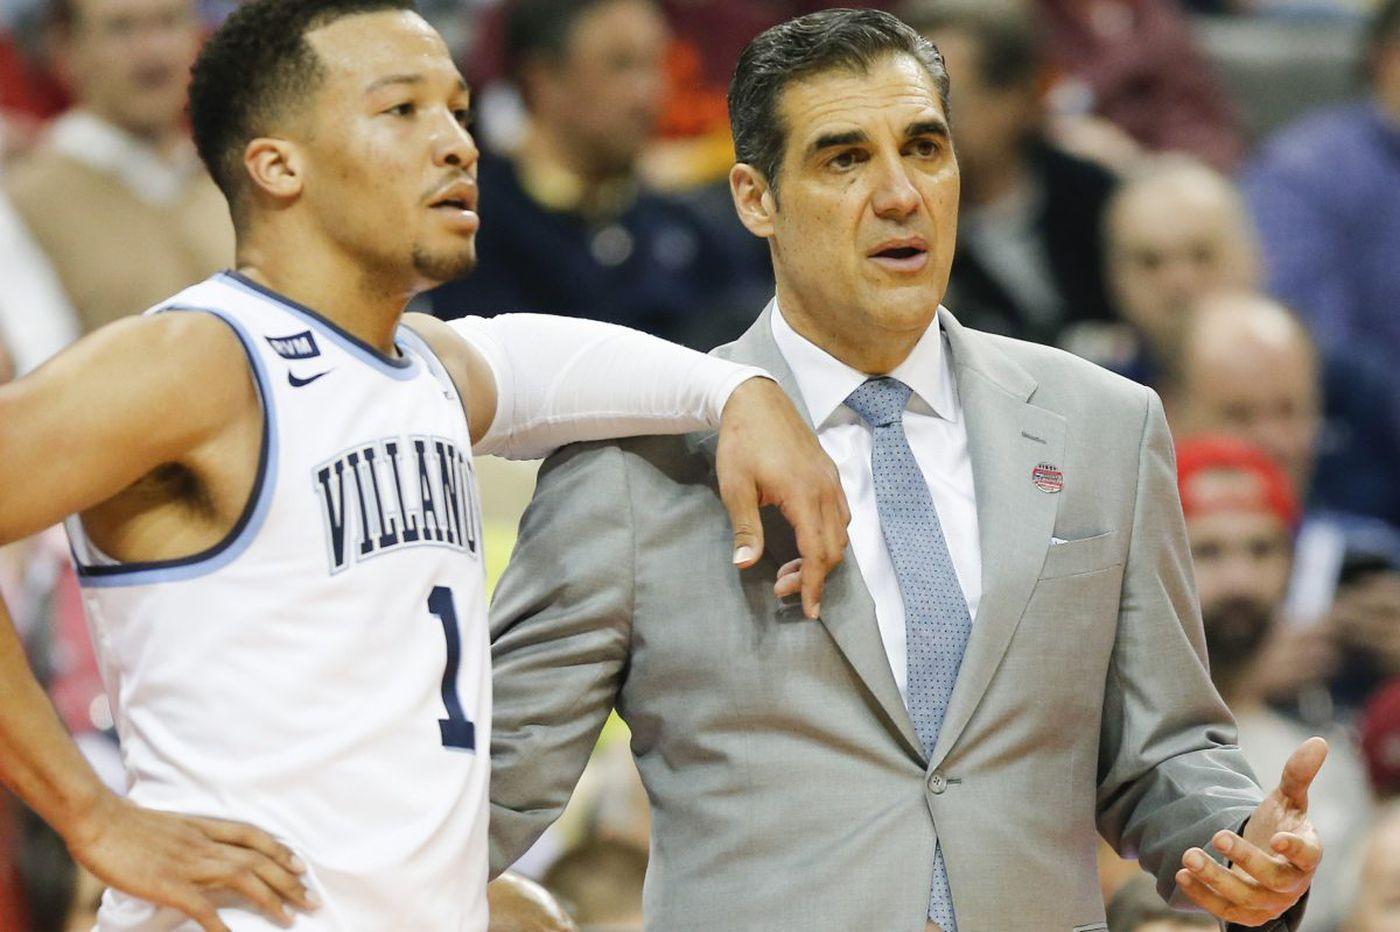 Villanova wins easily in first round of March Madness, avoids hard fate | Bob Ford